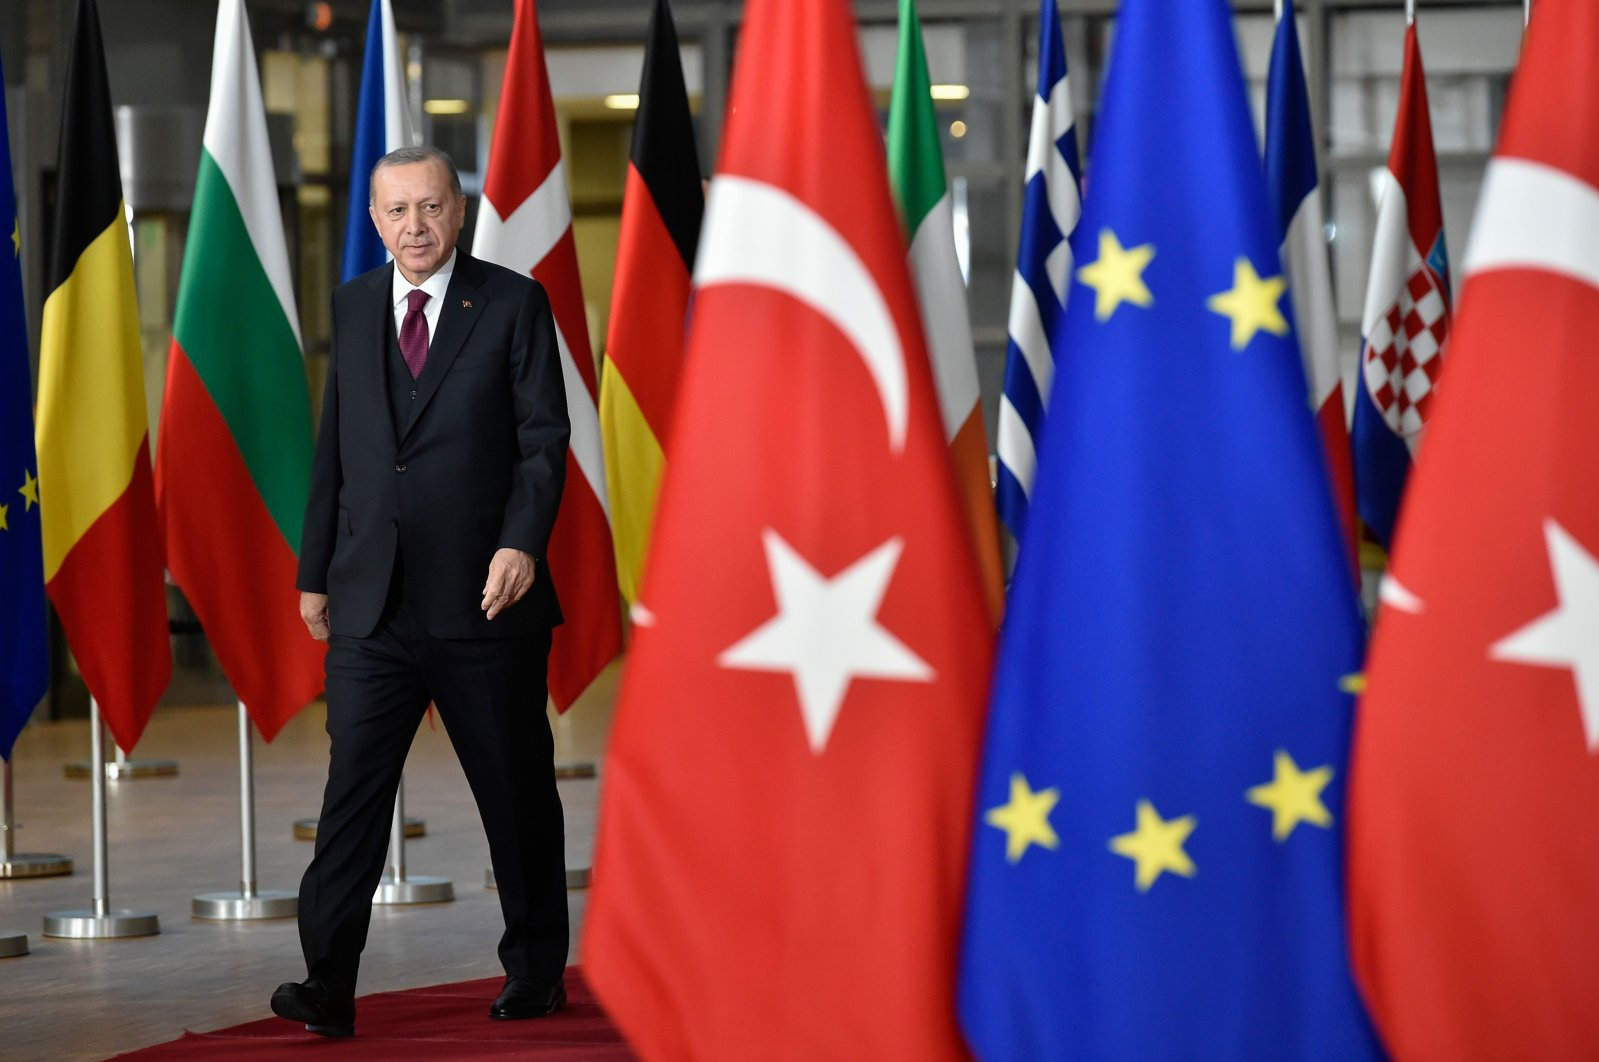 President Recep Tayyip Erdoğan arrives before a meeting with European Commission President Charles Michel, at the EU headquarters in Brussels, Belgium, March 9, 2020. (AFP Photo)